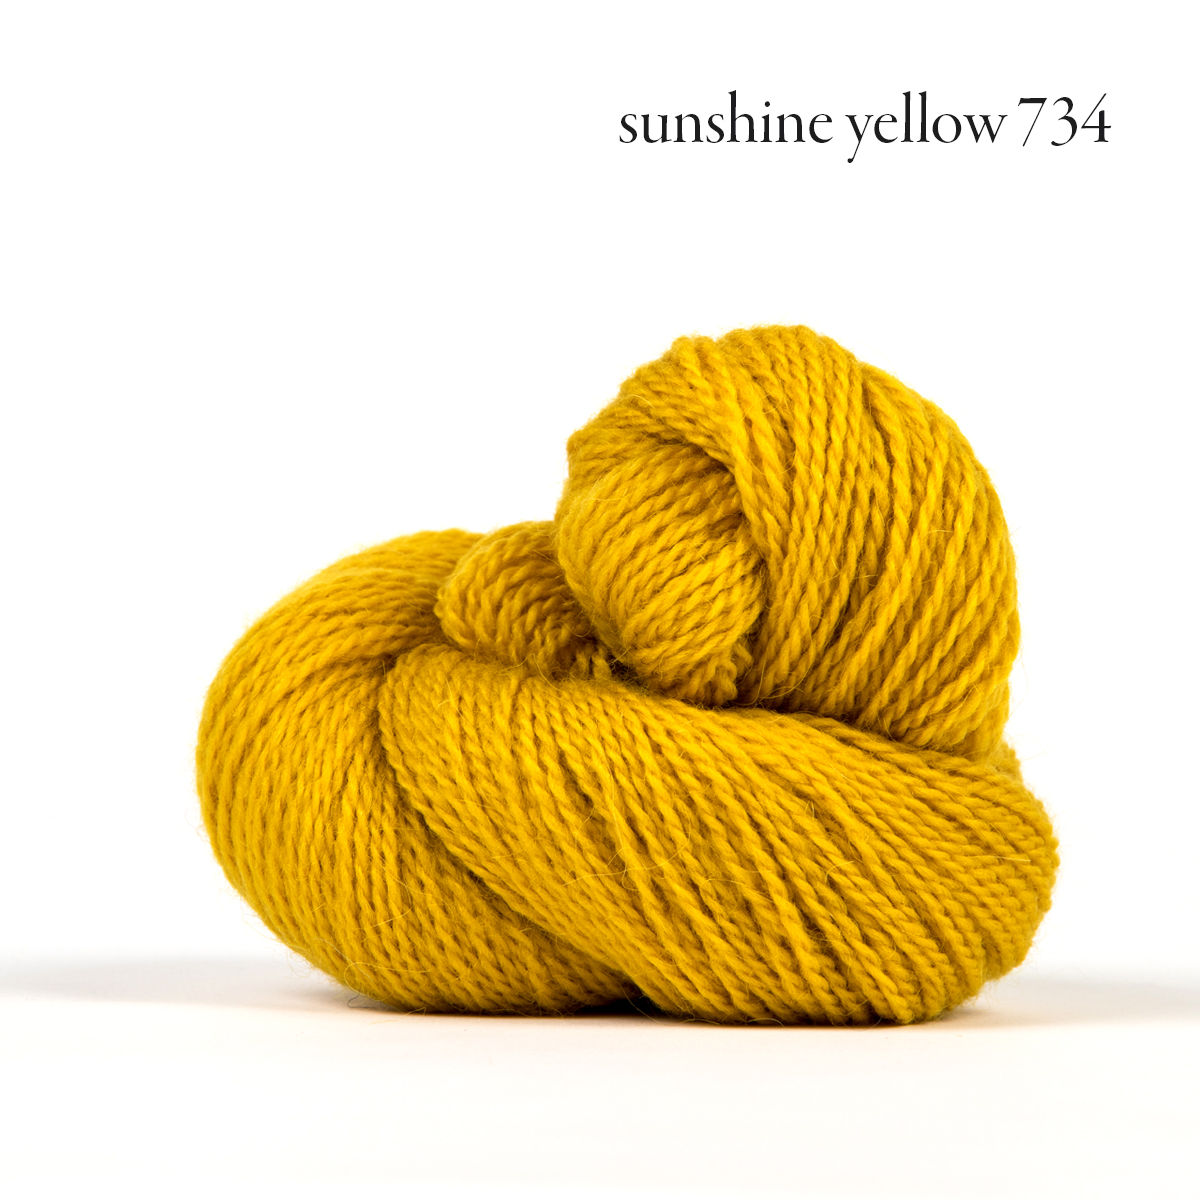 Andorra sunshine yellow.jpg